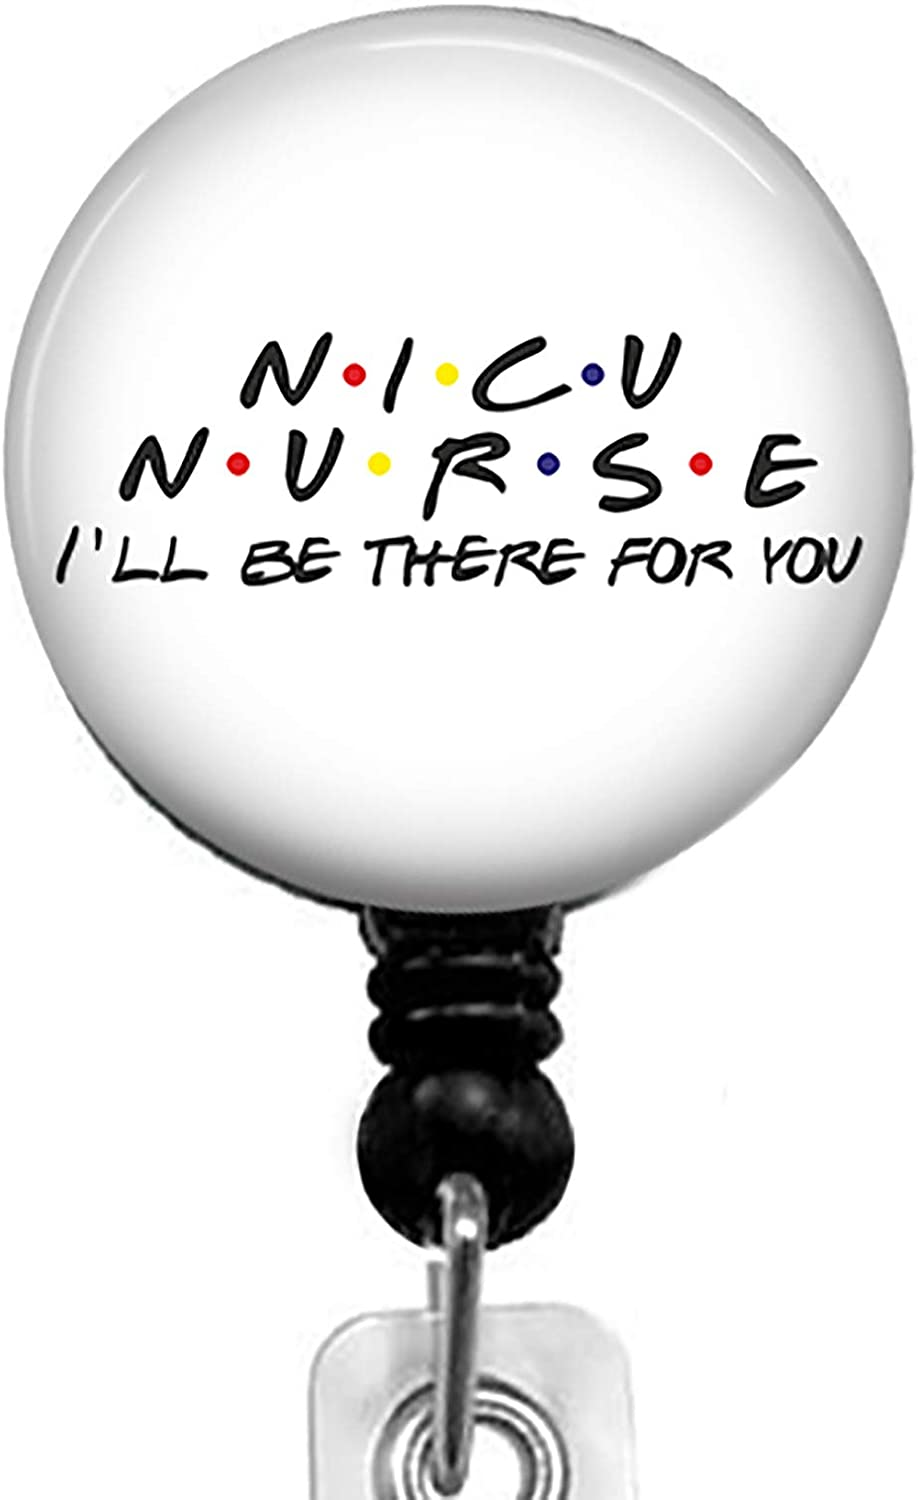 NICU Nurse and Friends-Ill be There for You Retractable Badge Reel with Alligator Clip,Name Nurse ID Card Badge Holder Reel, Decorative Custom Badge Holder